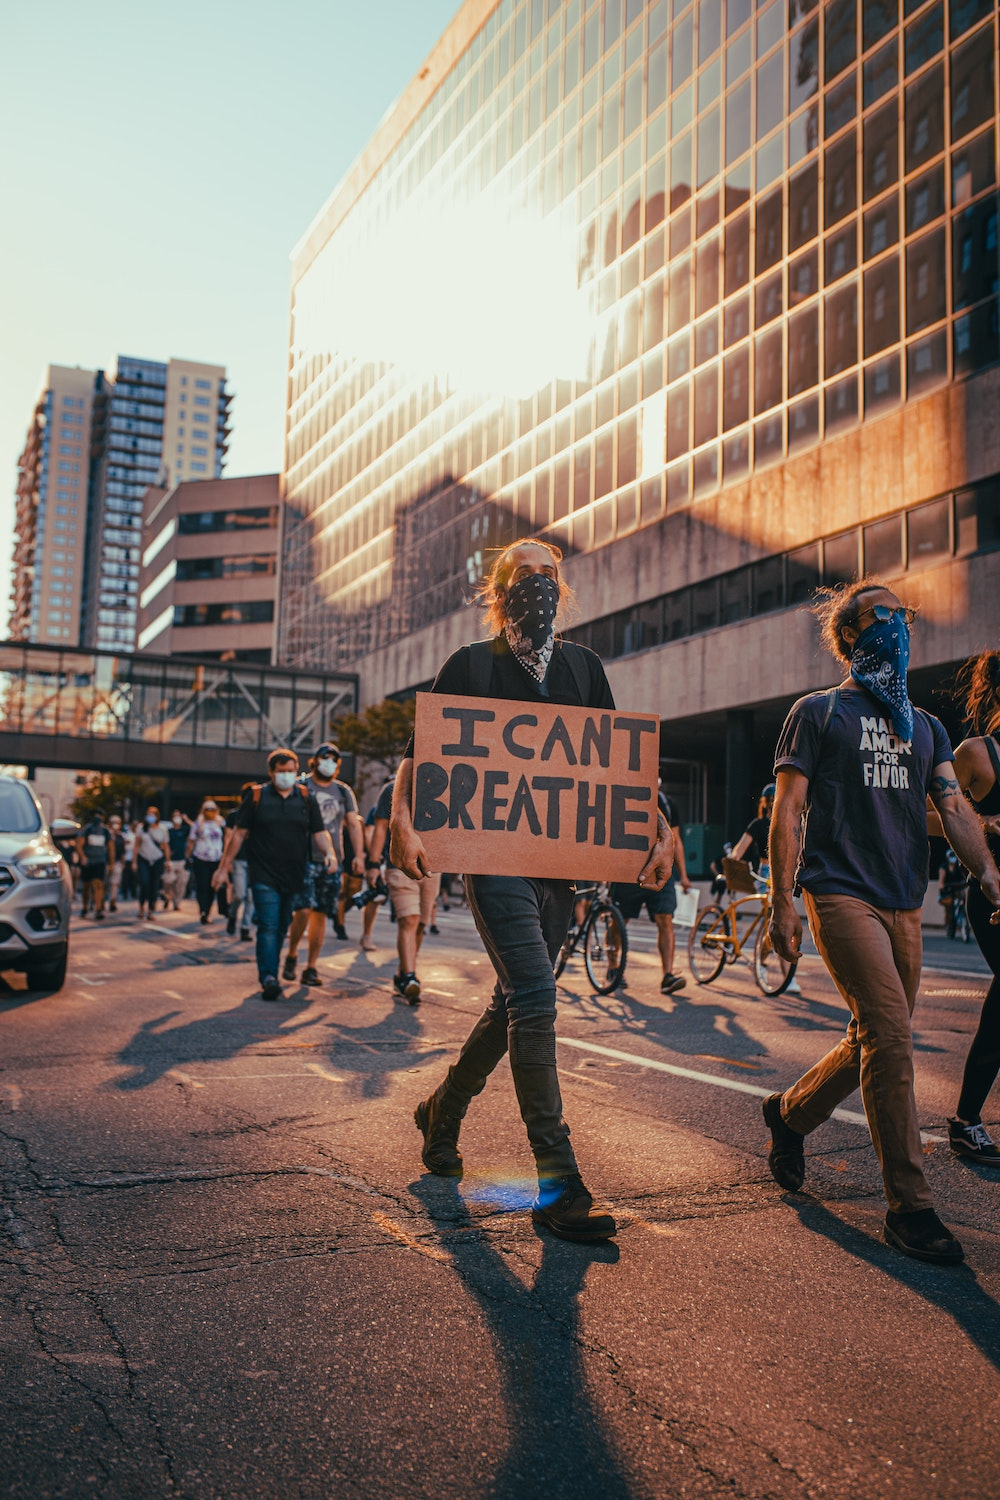 """close with a clear call to action, like """"go out and protest, make change in the world"""""""